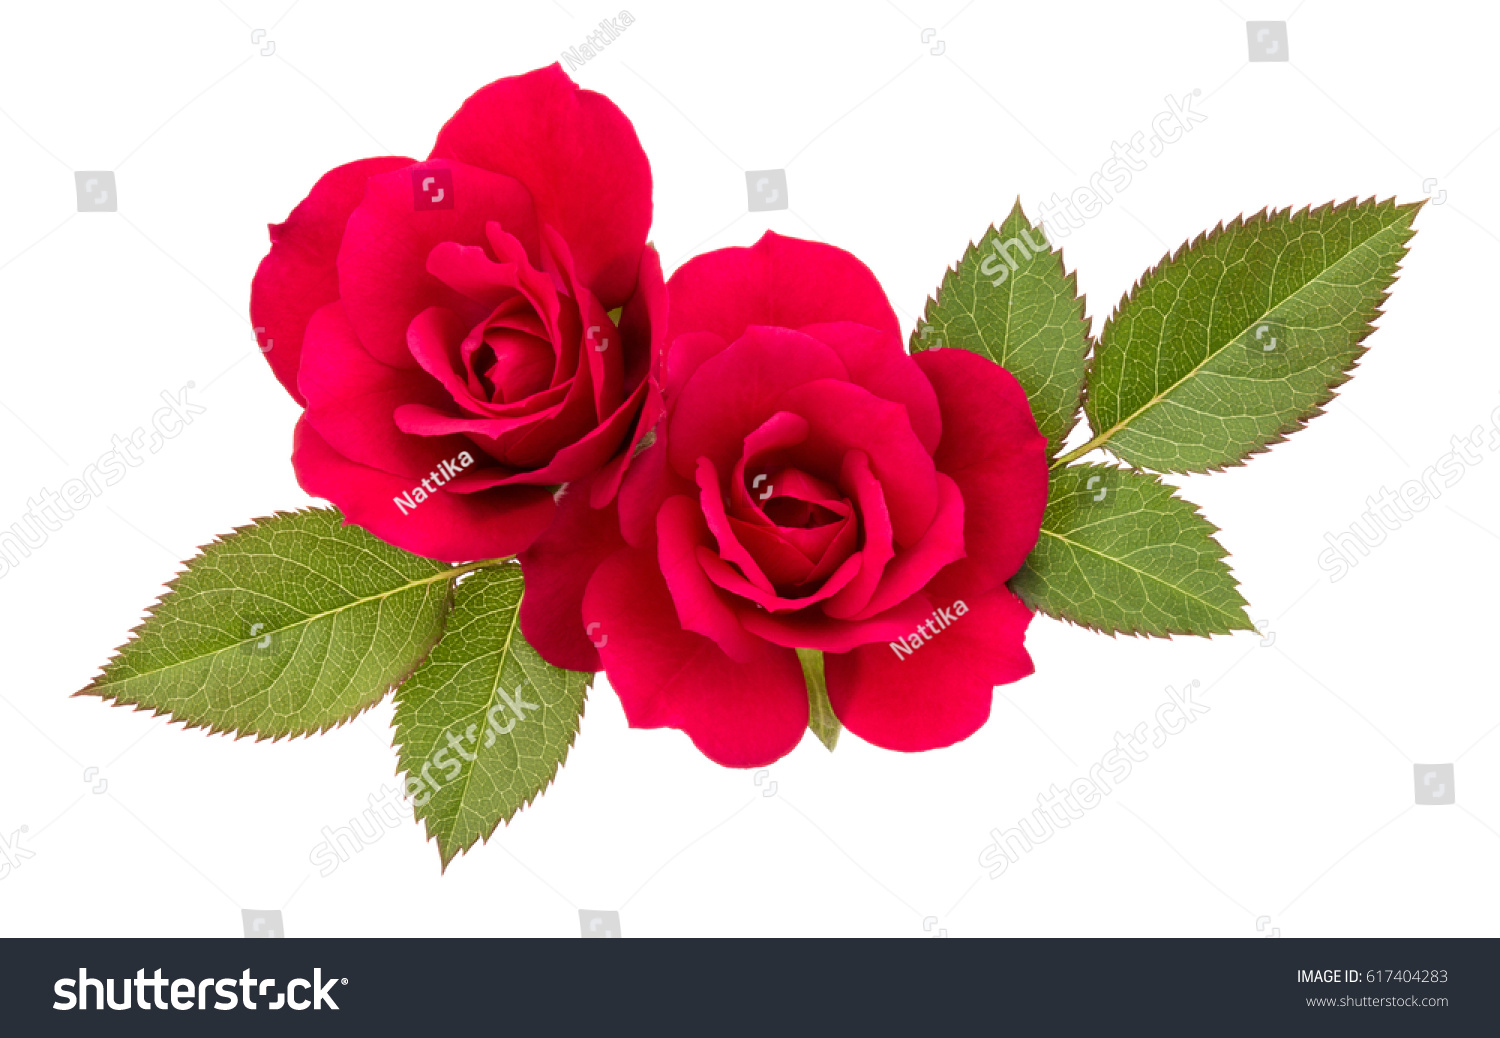 Red Rose Flower Bouquet With Green Leaves Isolated On White